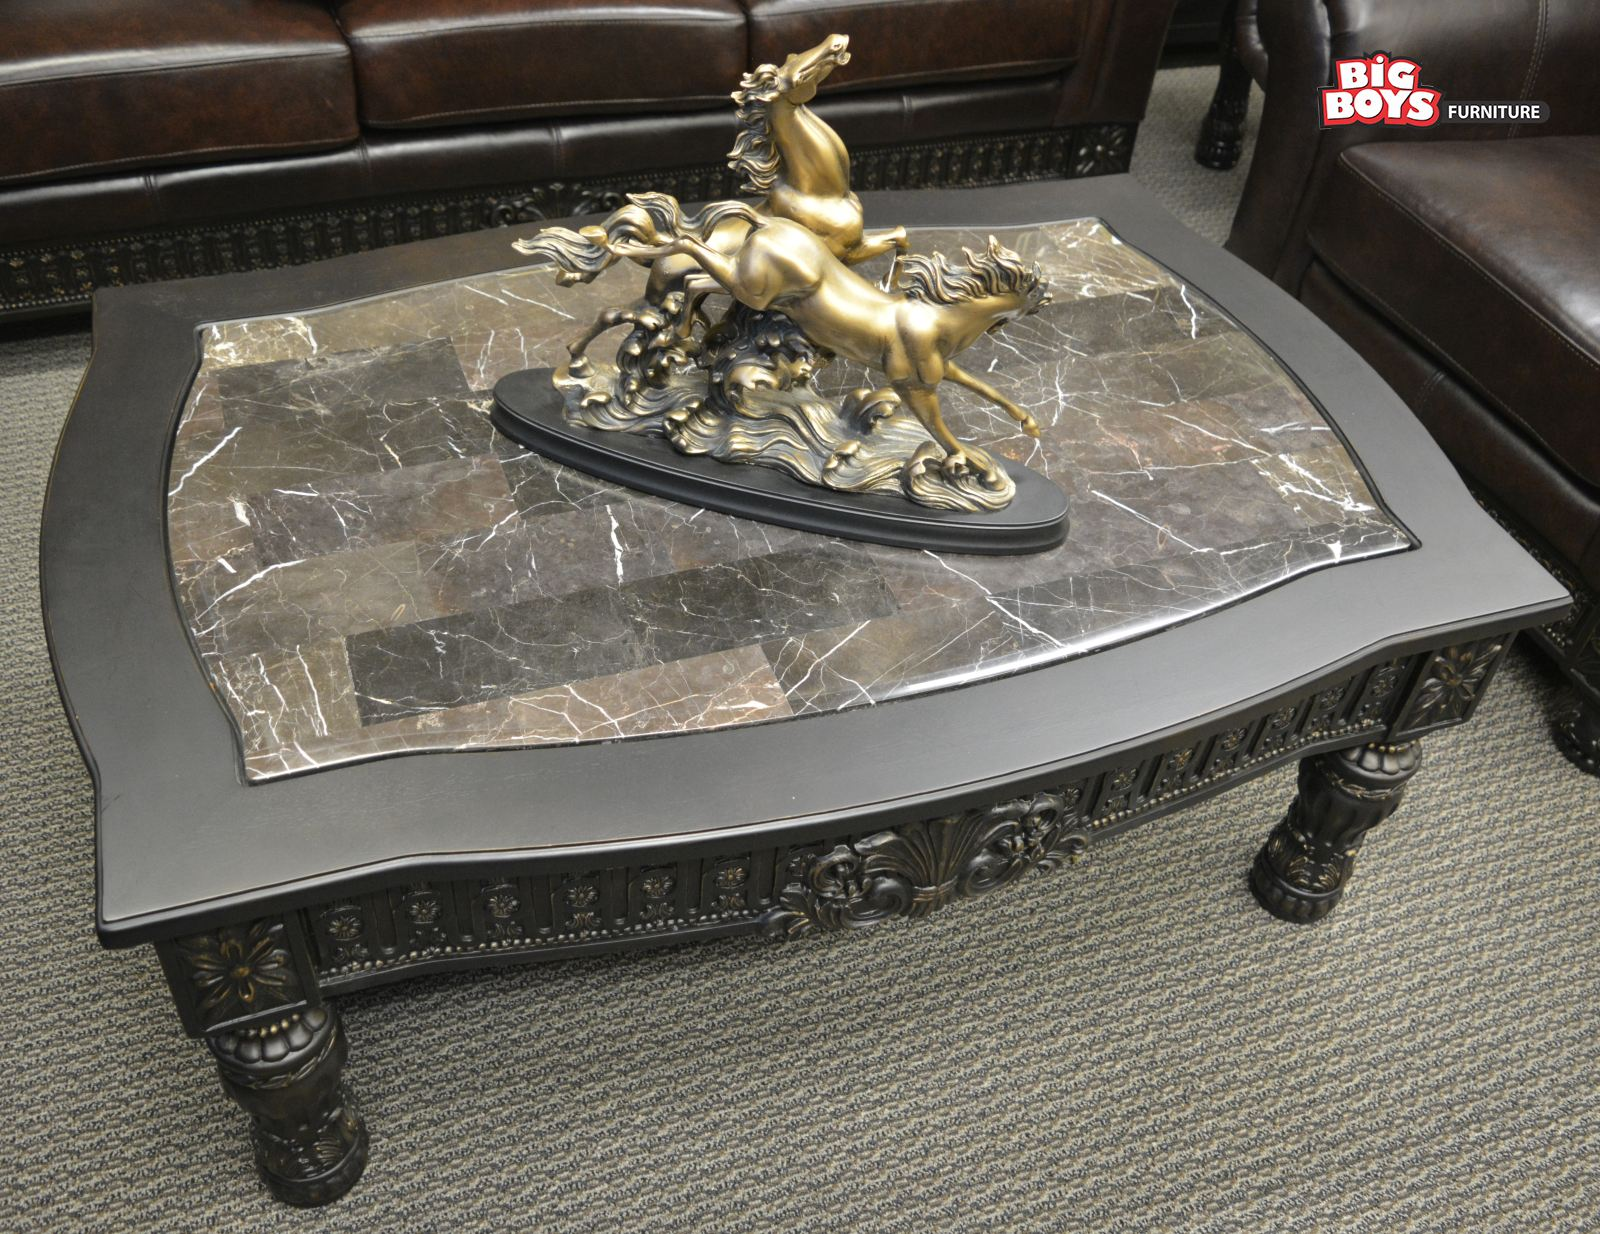 This kind of table make your living room more stylish